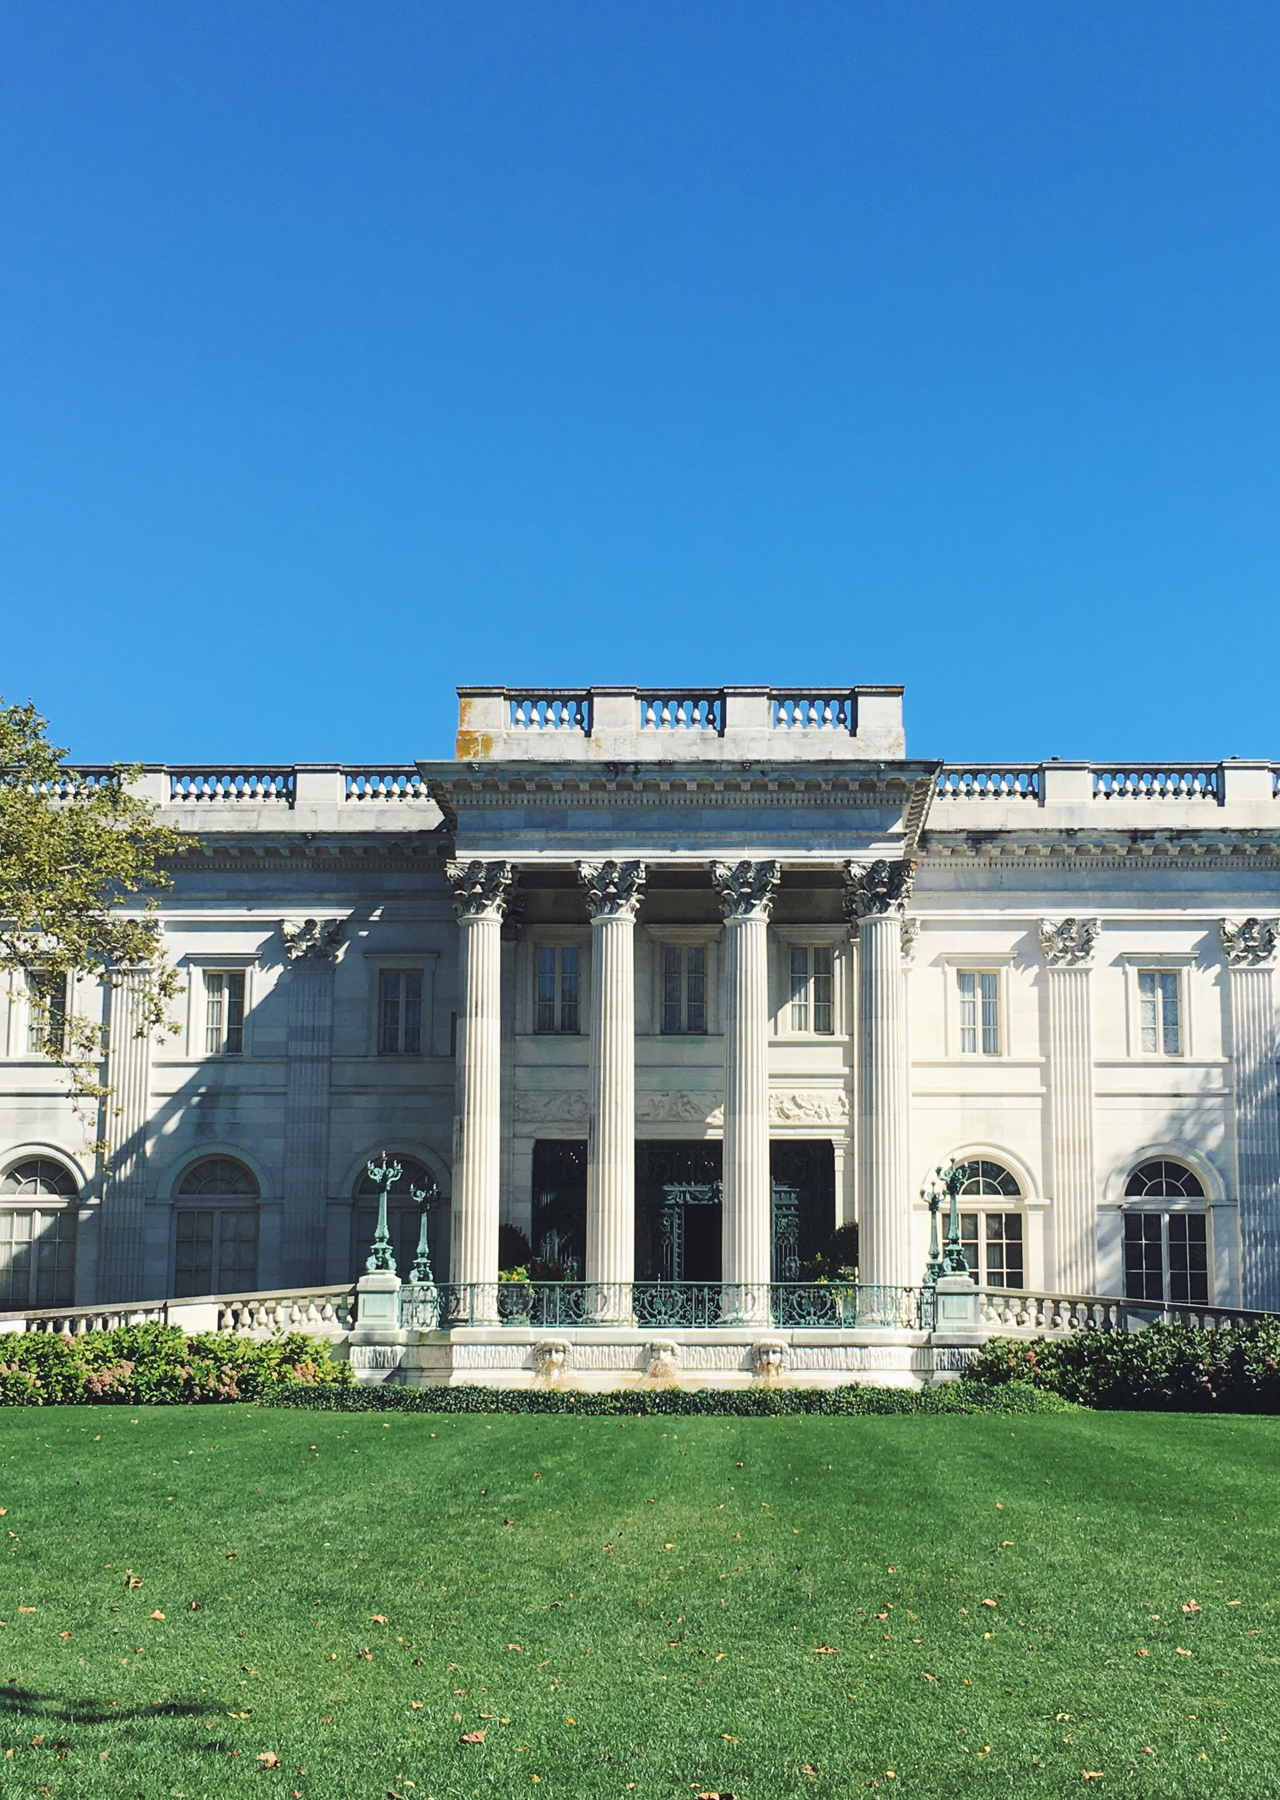 The Steele Maiden: Travel Guide to Newport, Rhode Island